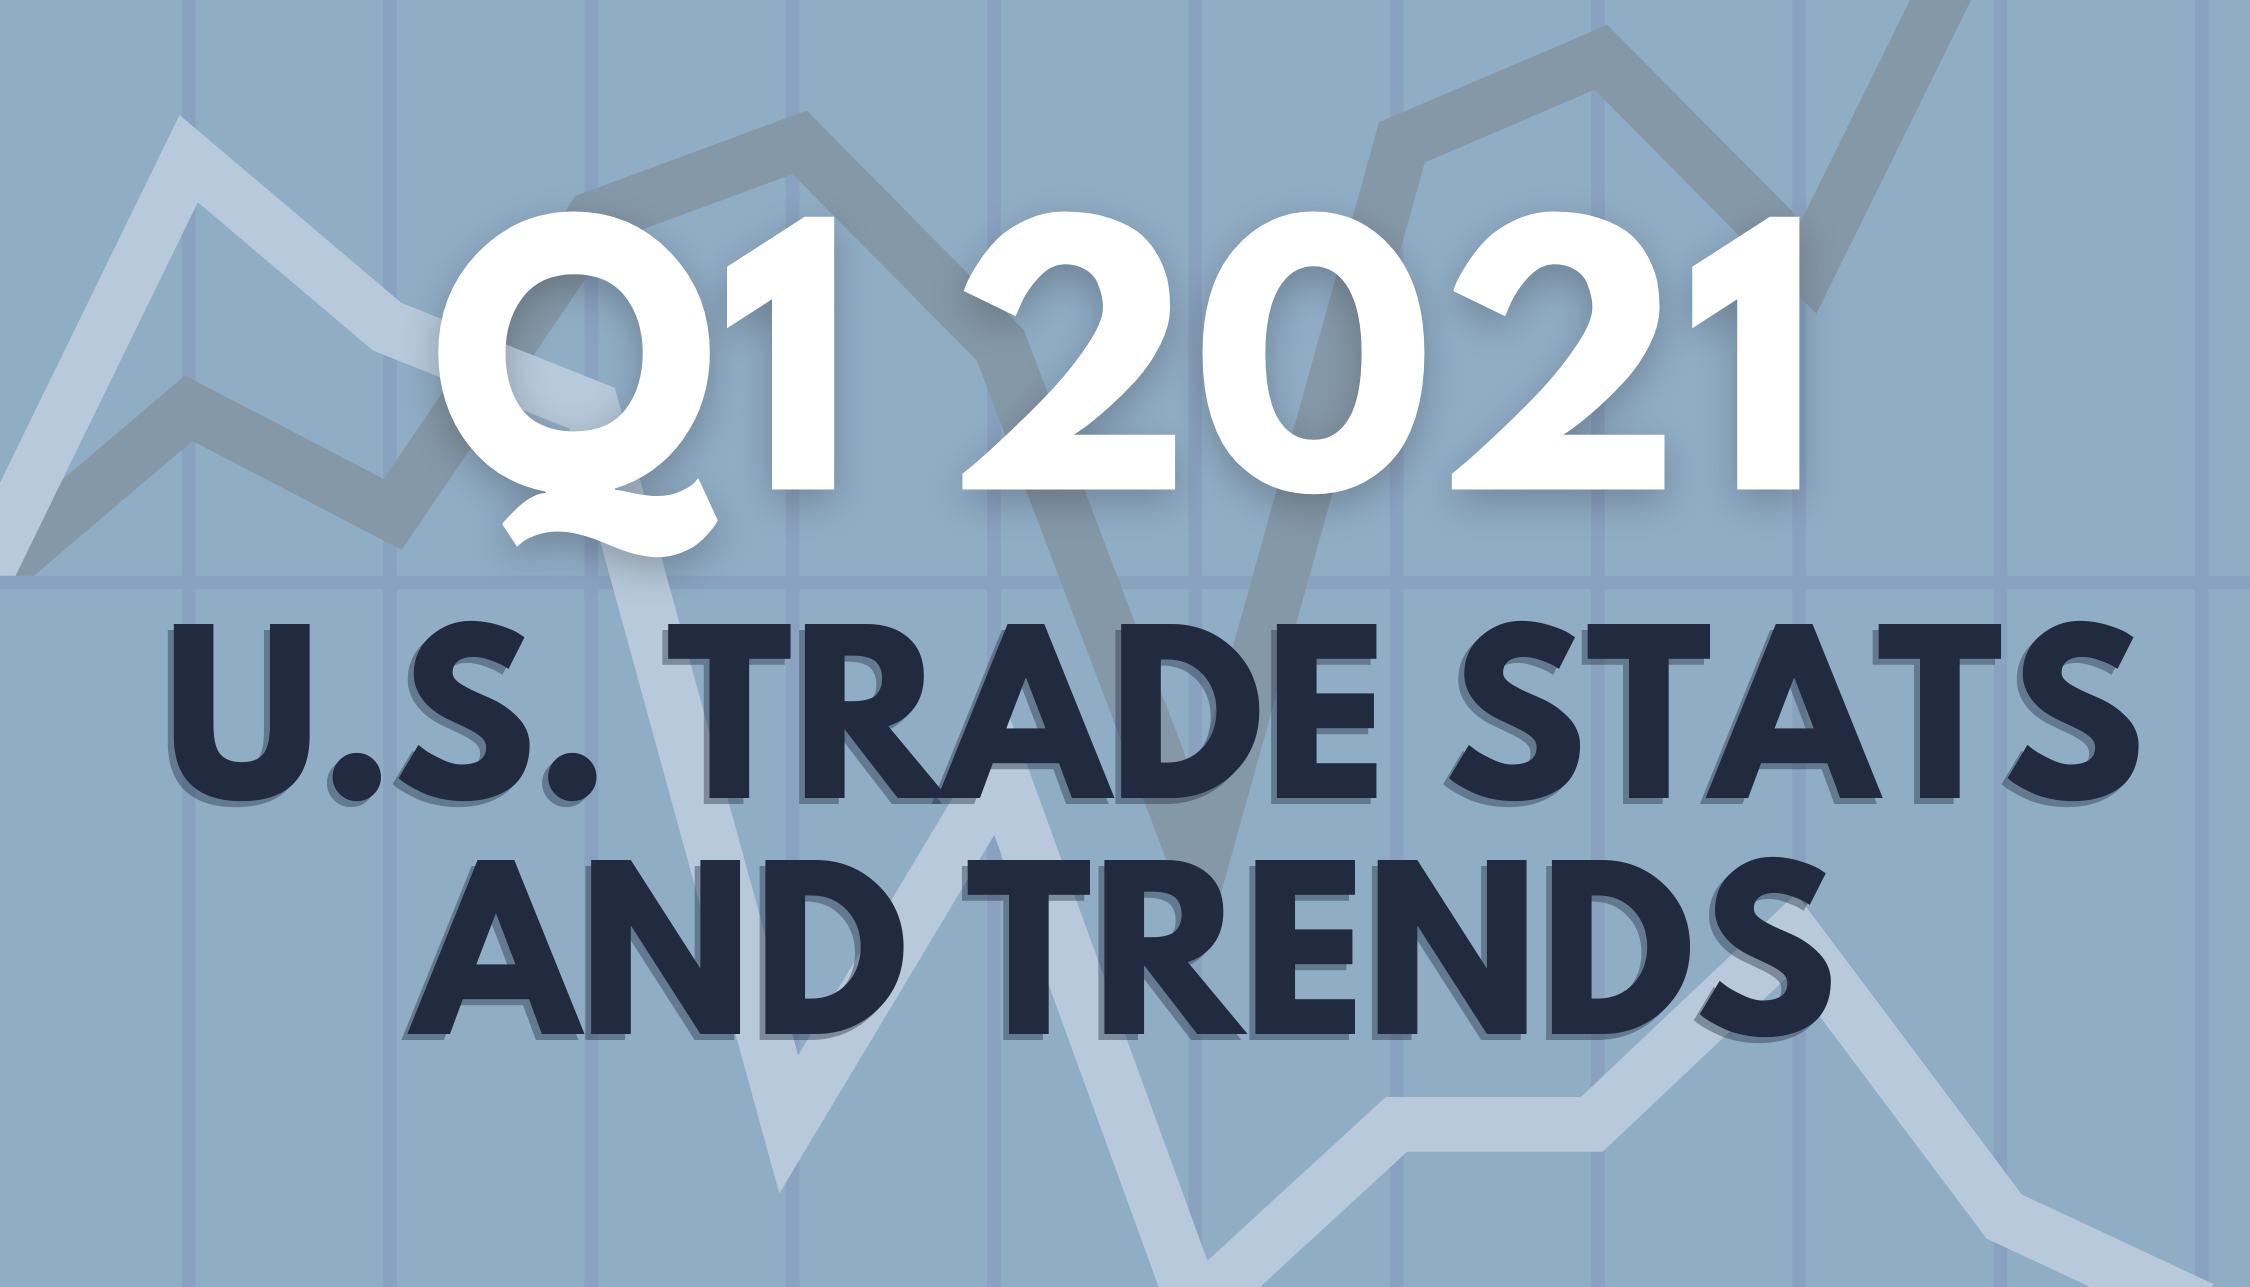 U.S. Trade Stats and Trends | Q1 2021